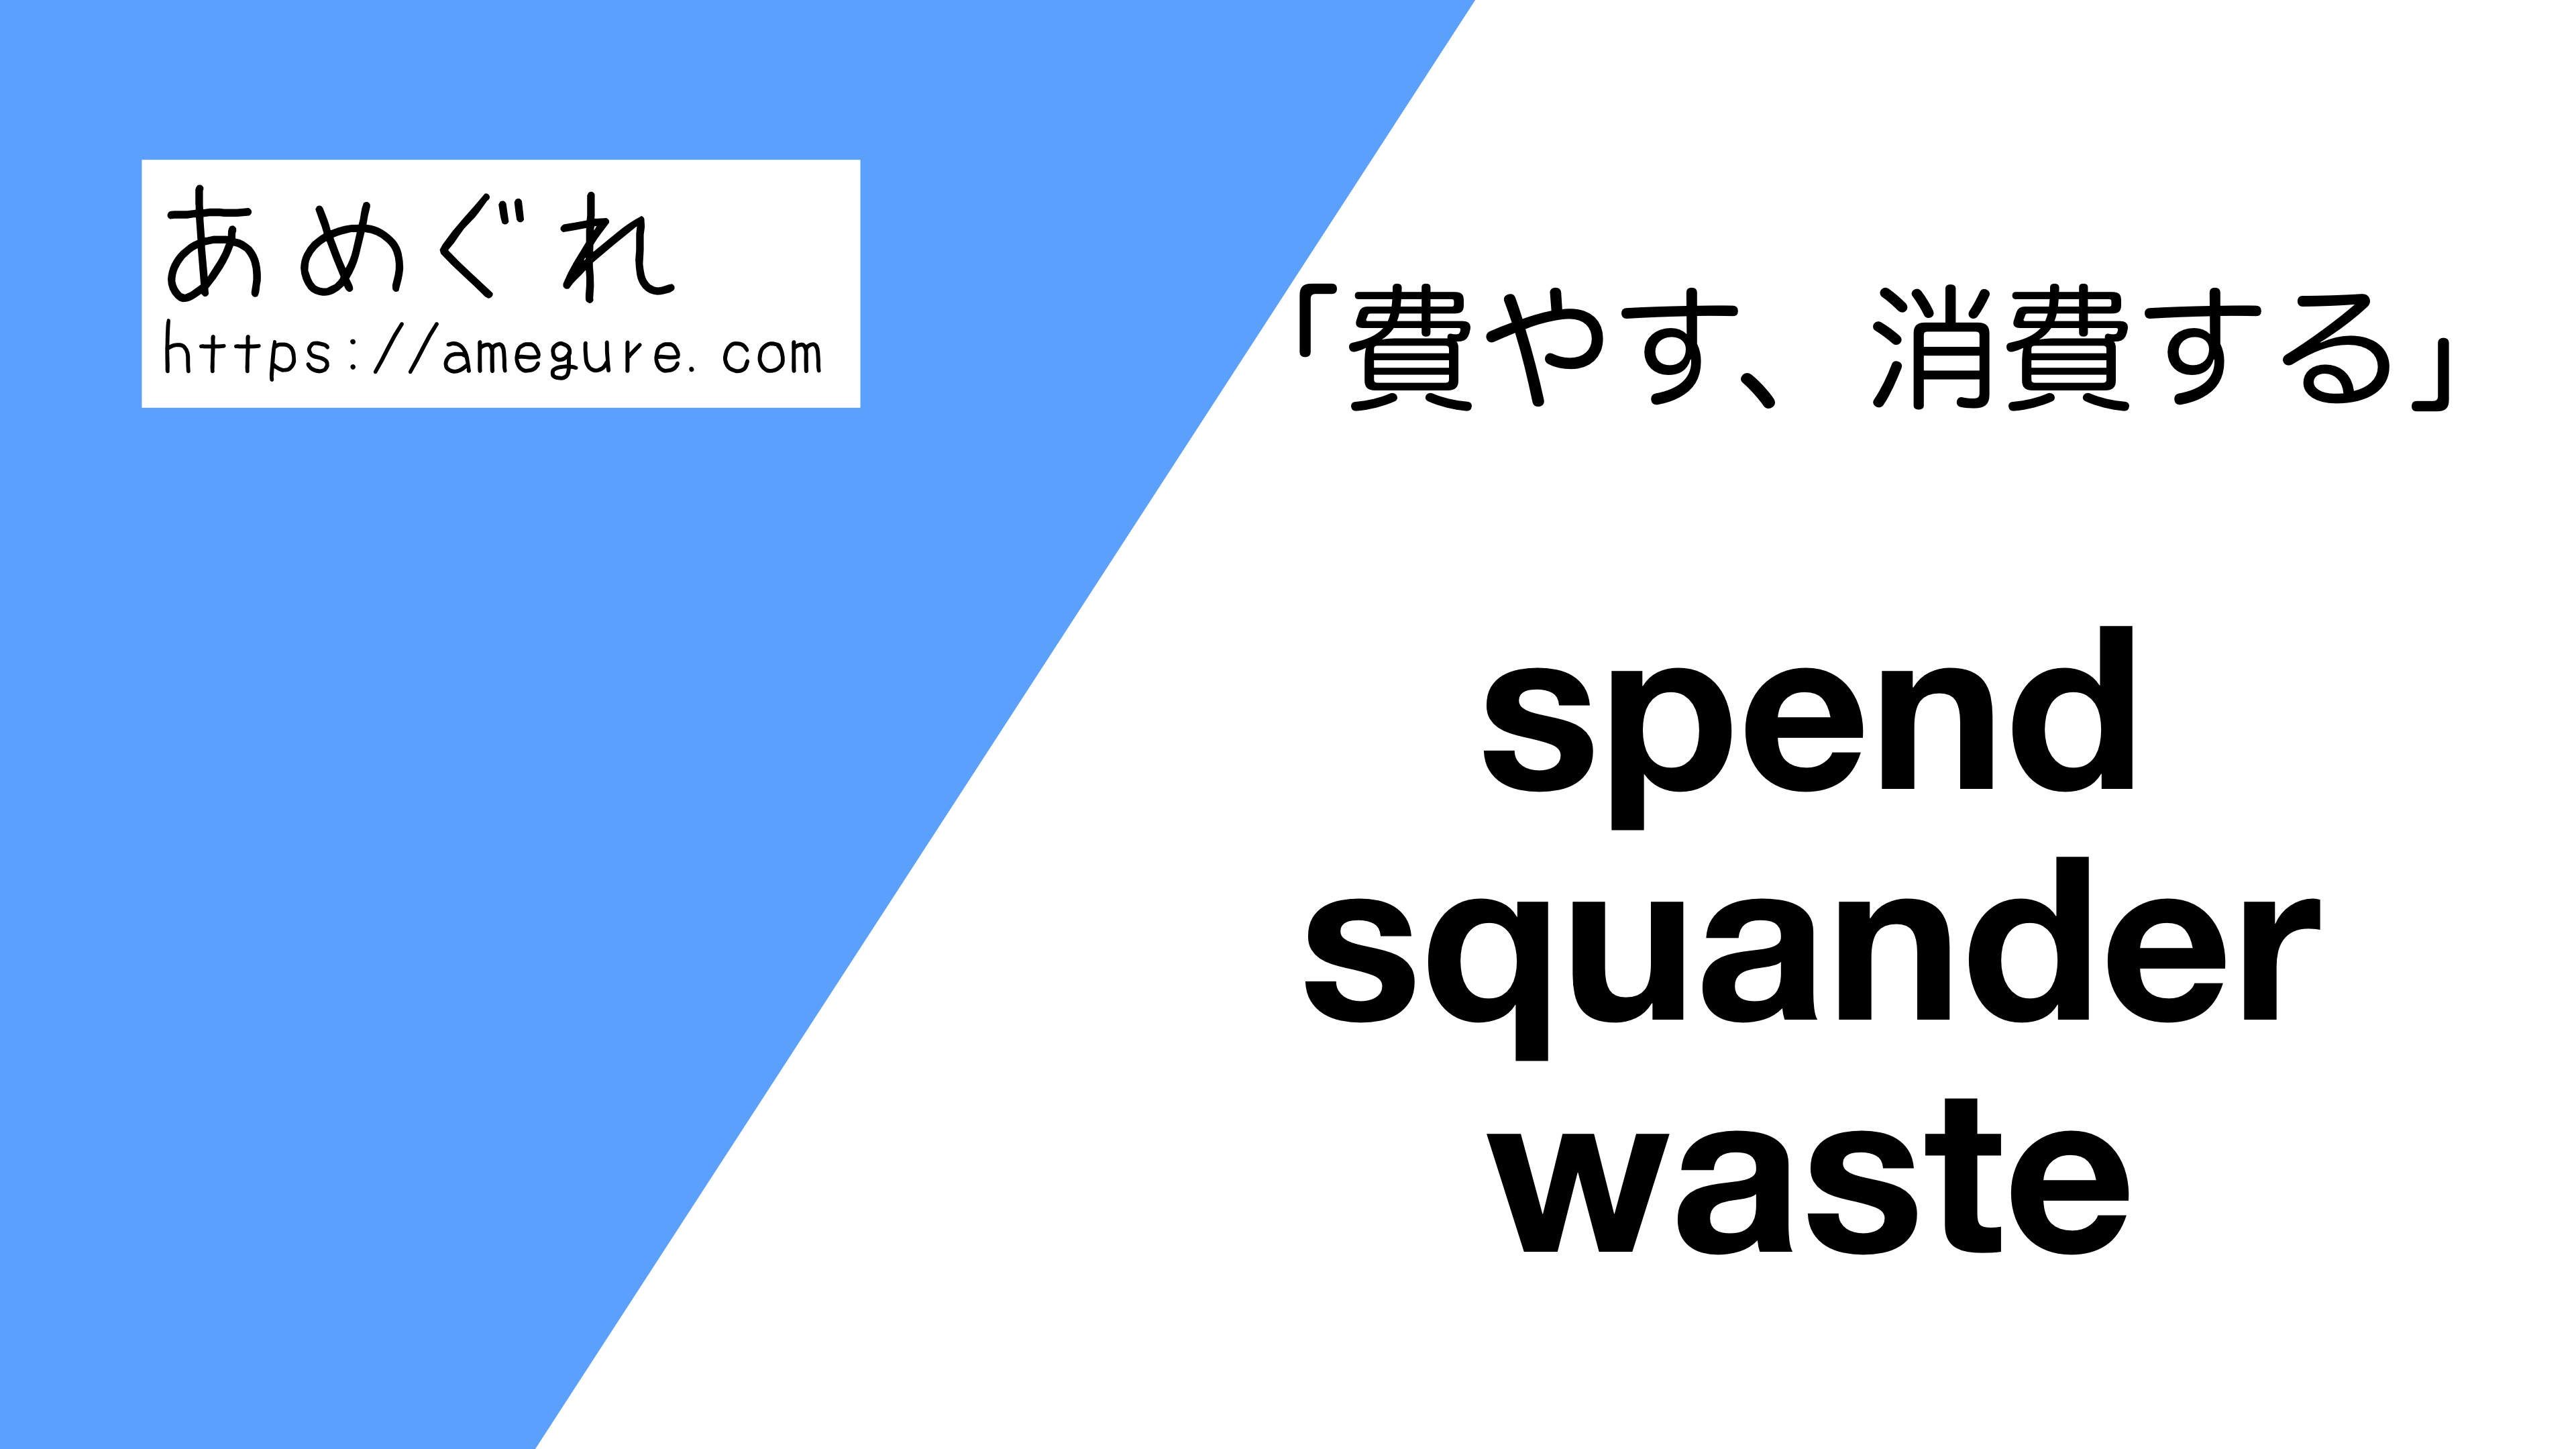 spend-squander-waste違い